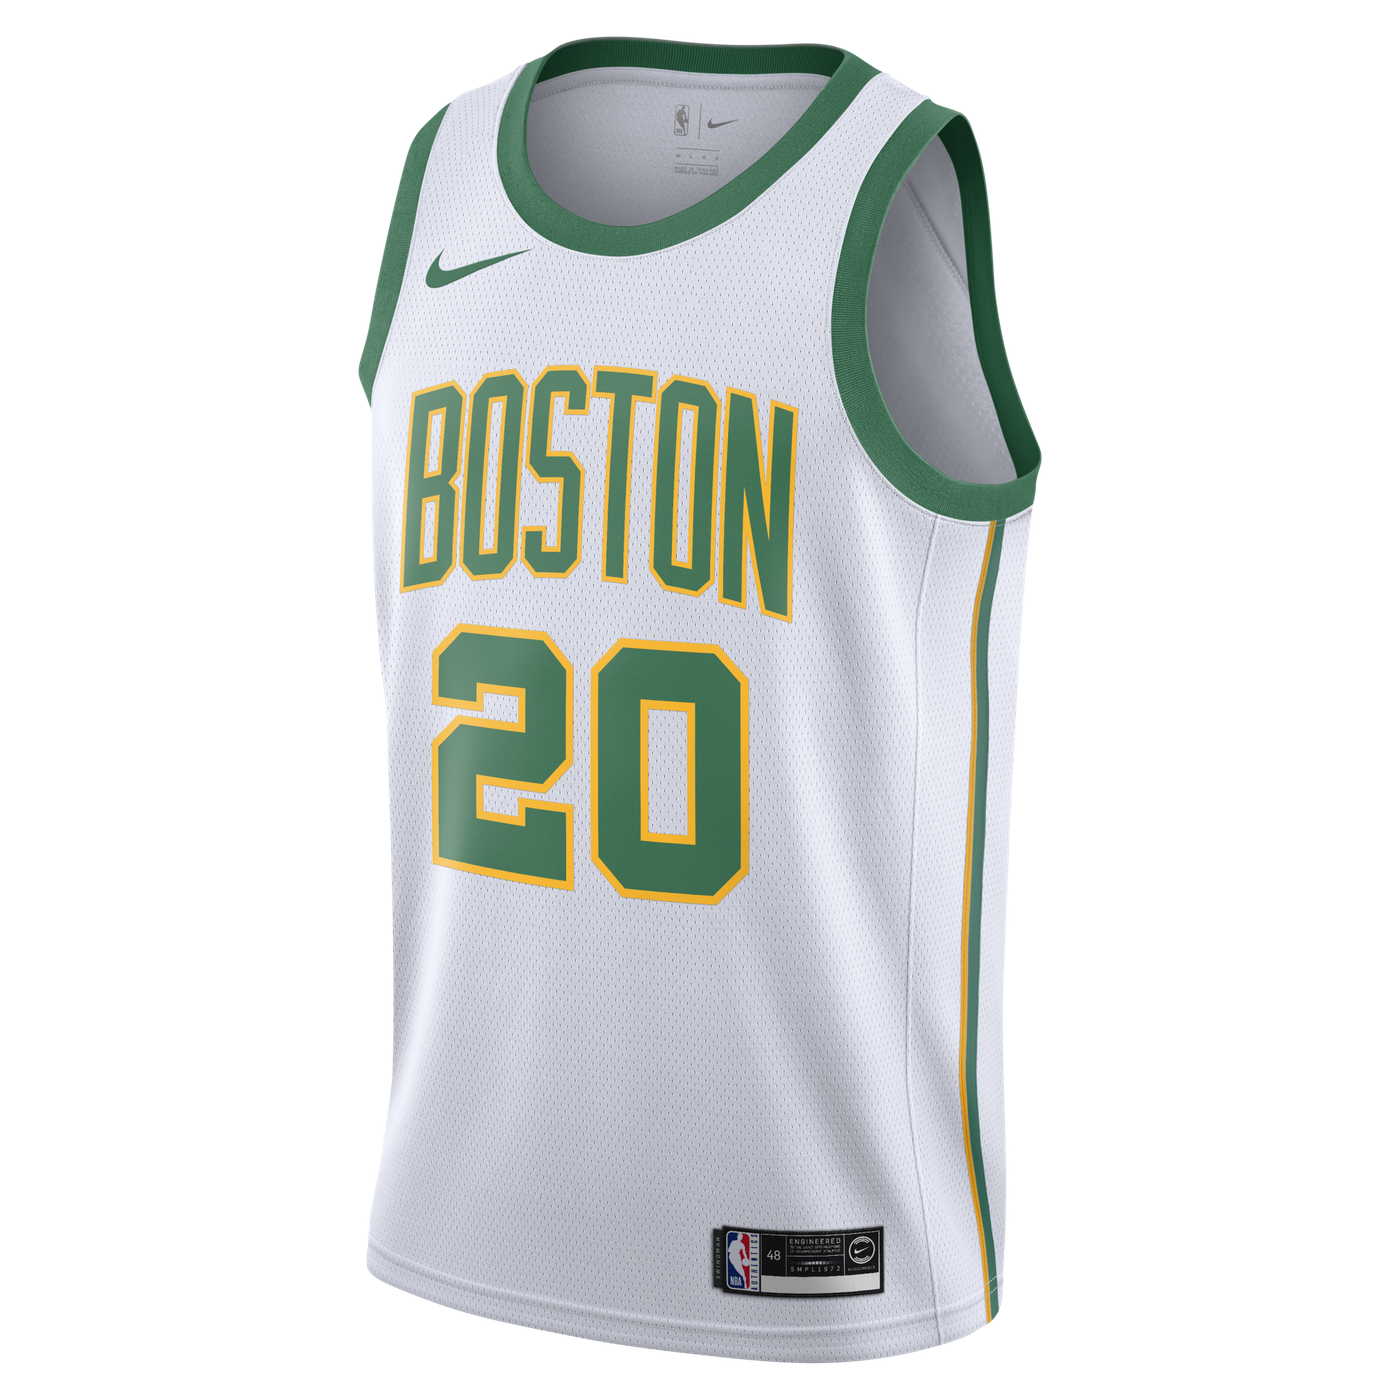 size 40 0fb52 74792 NBA City Edition: The jerseys, T-shirts and merch you can ...